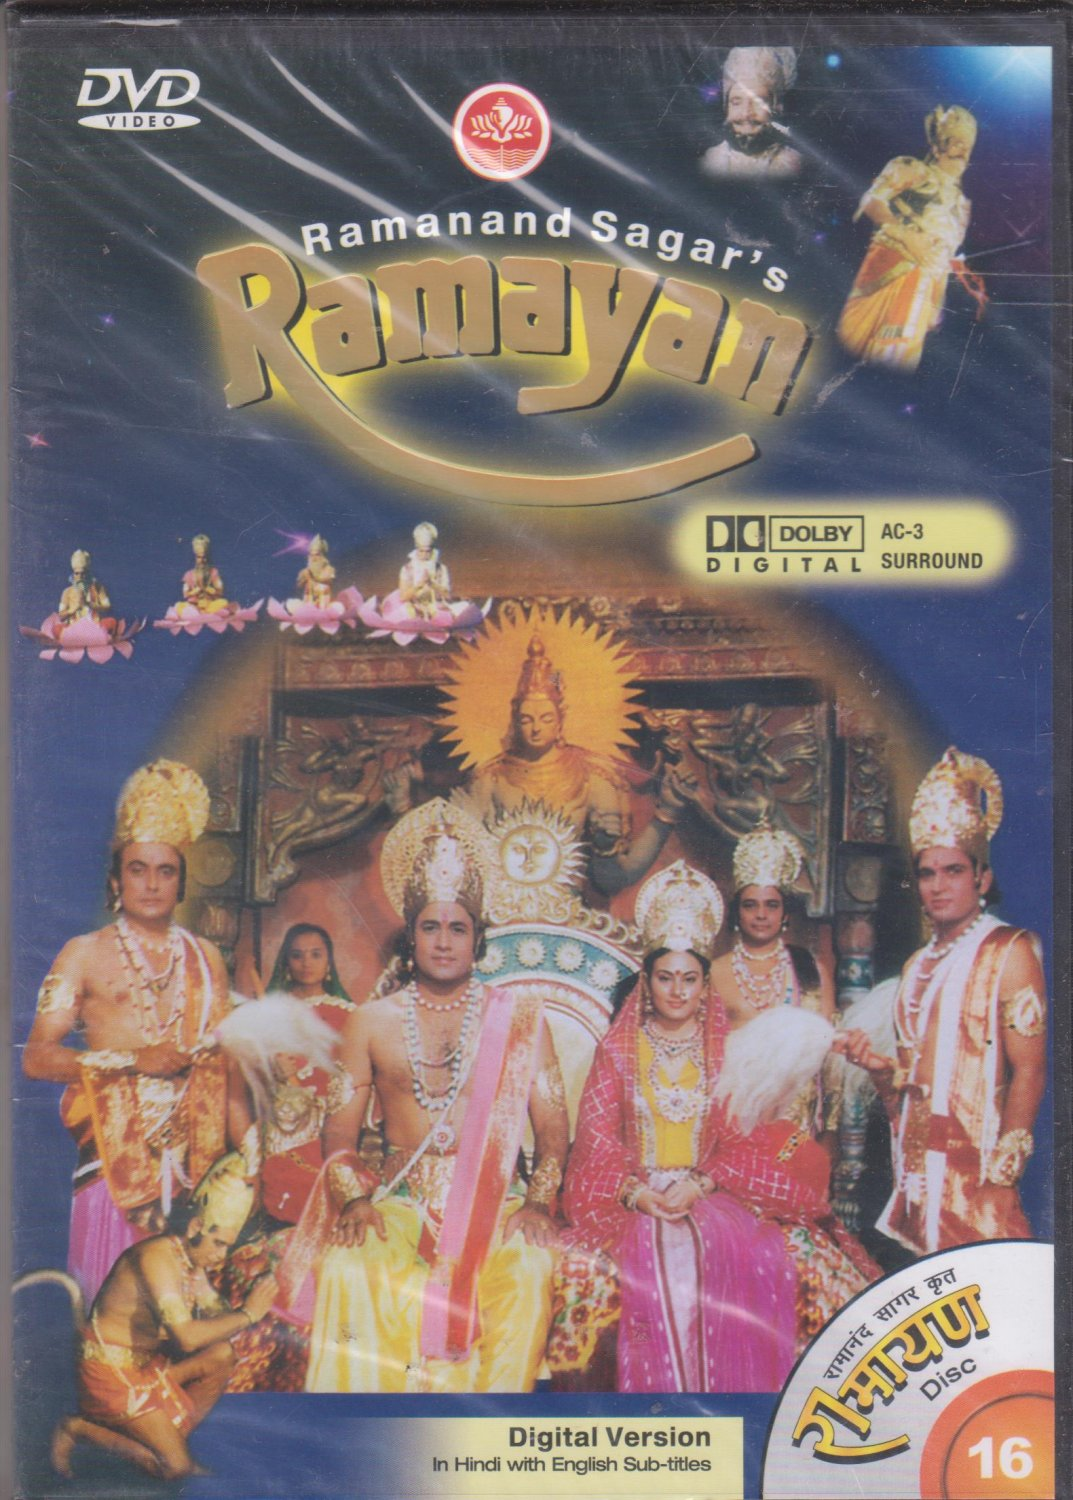 Ramayan - Disc 16 - Episode 74 to 78 - ramanand Sahar's  [Dvd]  1st edition Released